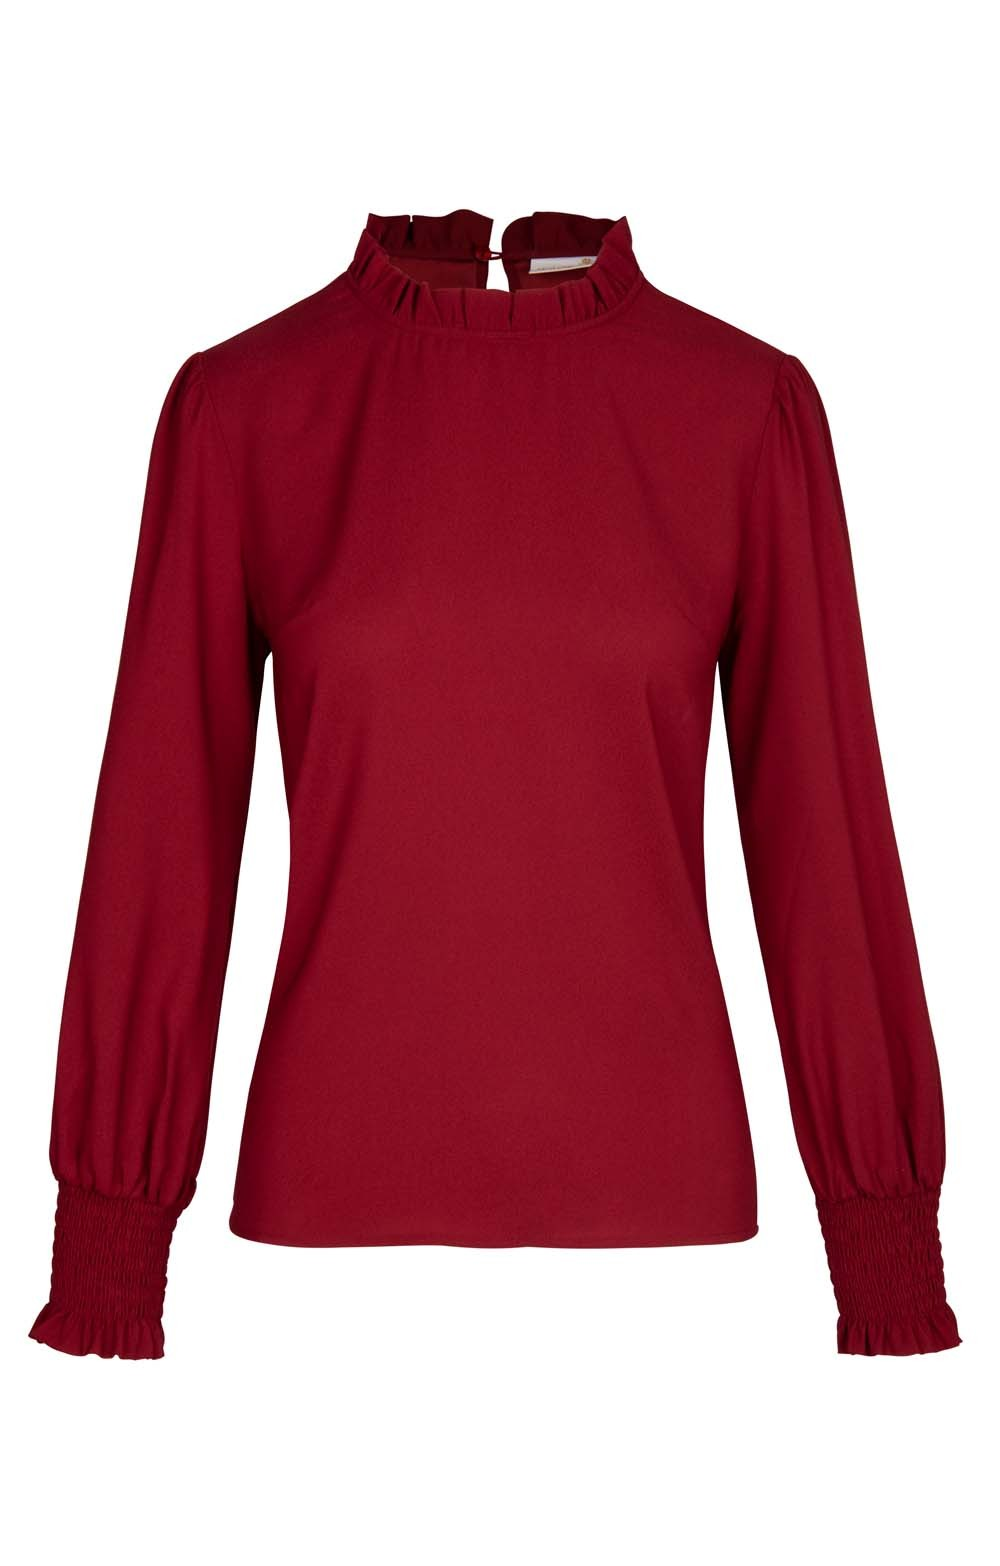 Raspberry blouse with frill collar.